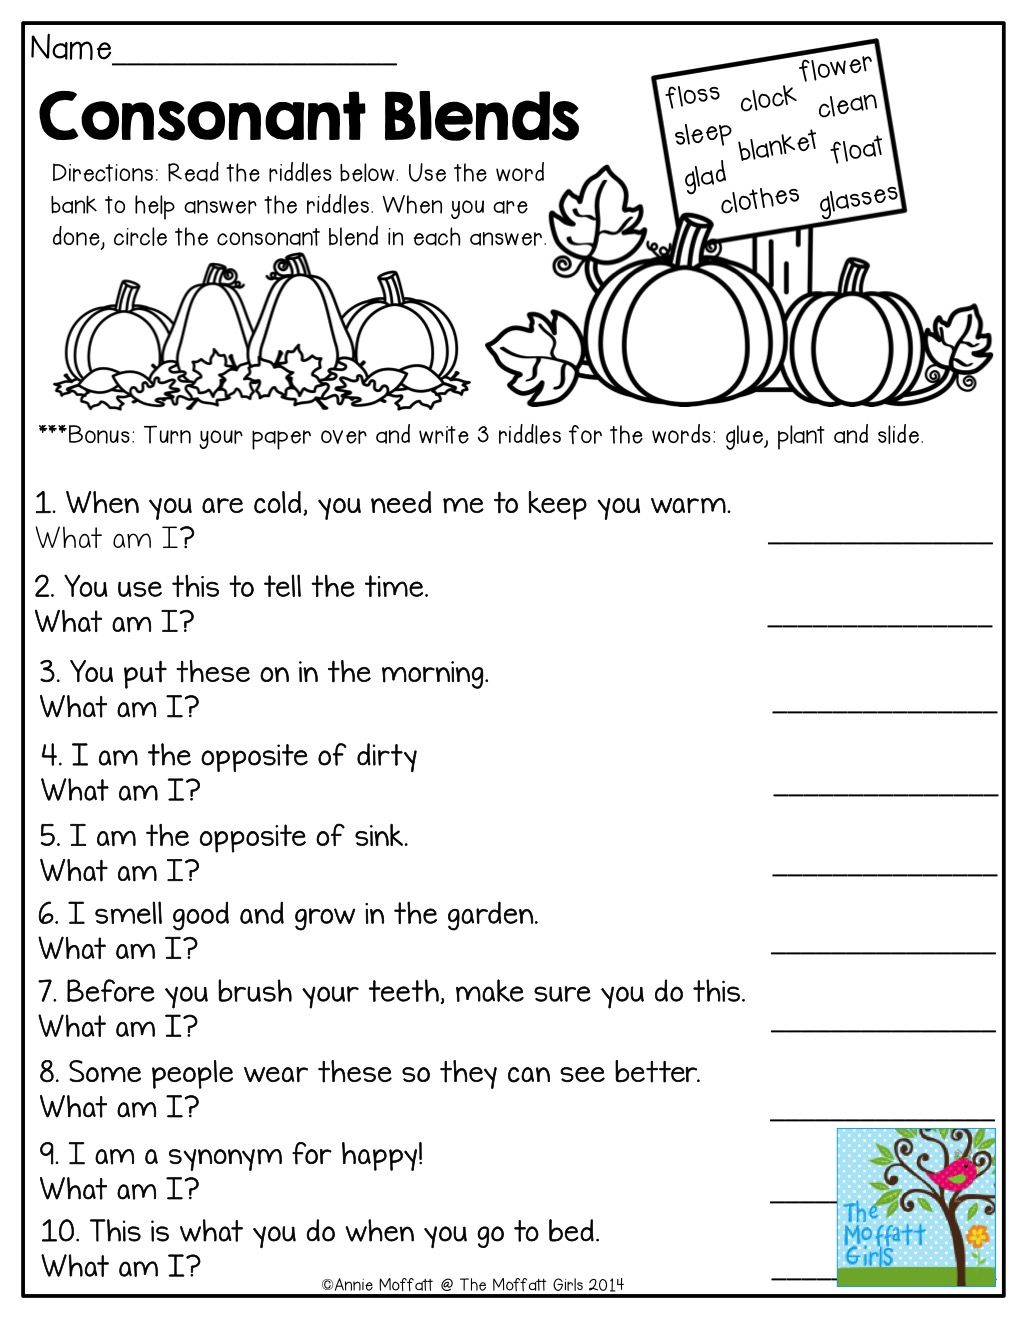 Worksheets Consonant Blends Worksheets consonant blends mystery words read the clues and write correct word lots of